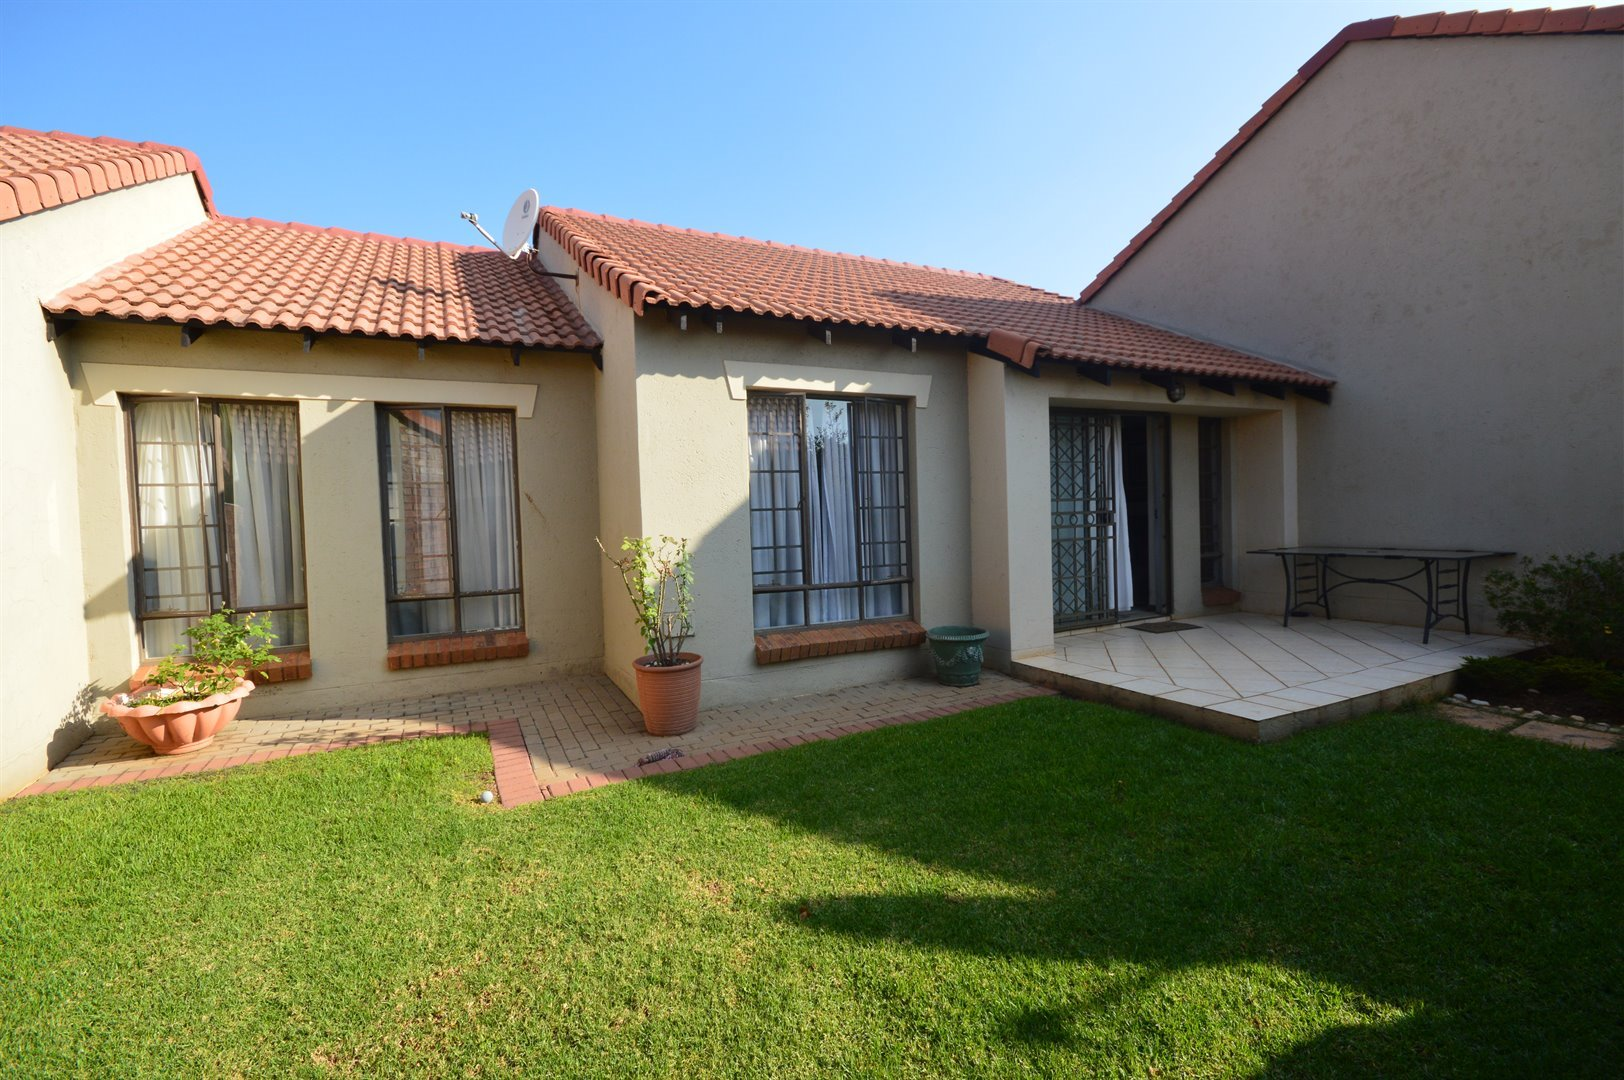 Two bedroom townhouse for sale in centurion bedroom for 2 bedroom townhouse